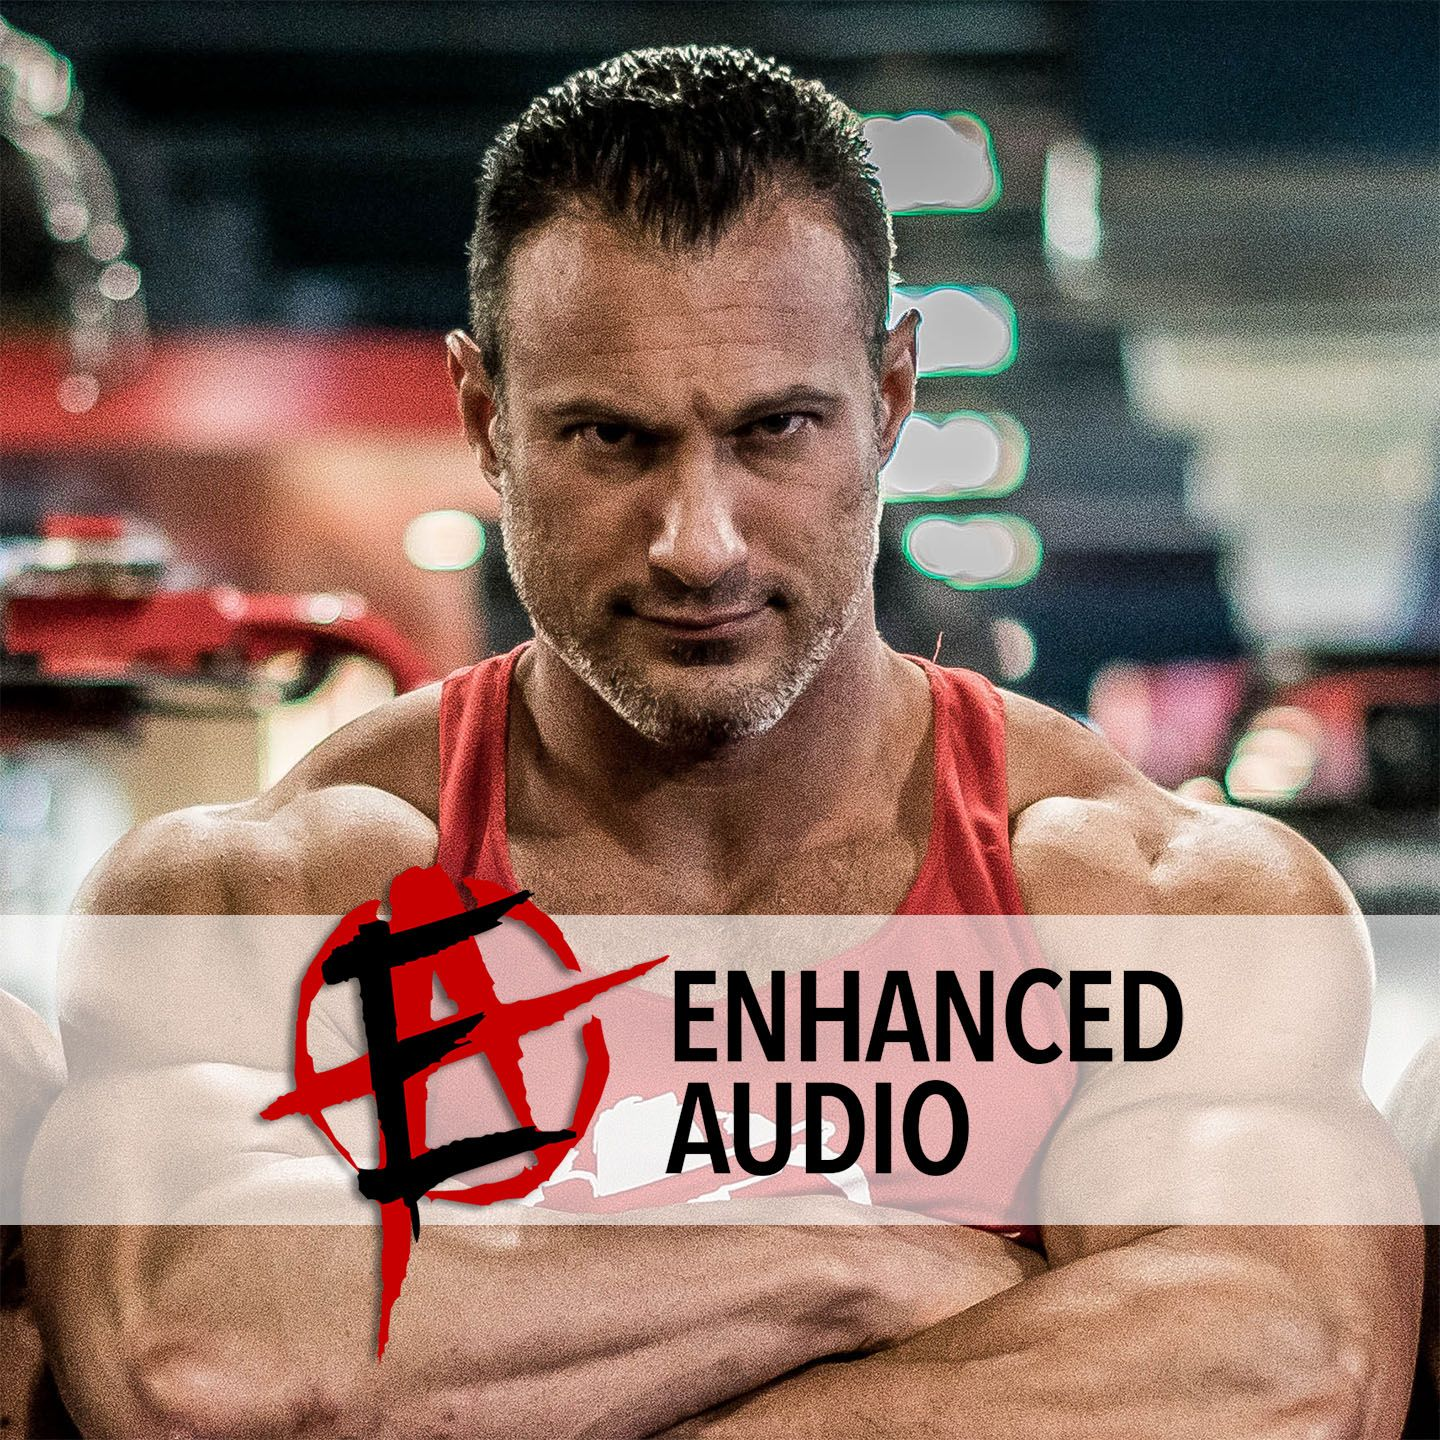 Deca plus EQ medical uses by Enhanced Audio • A podcast on Anchor